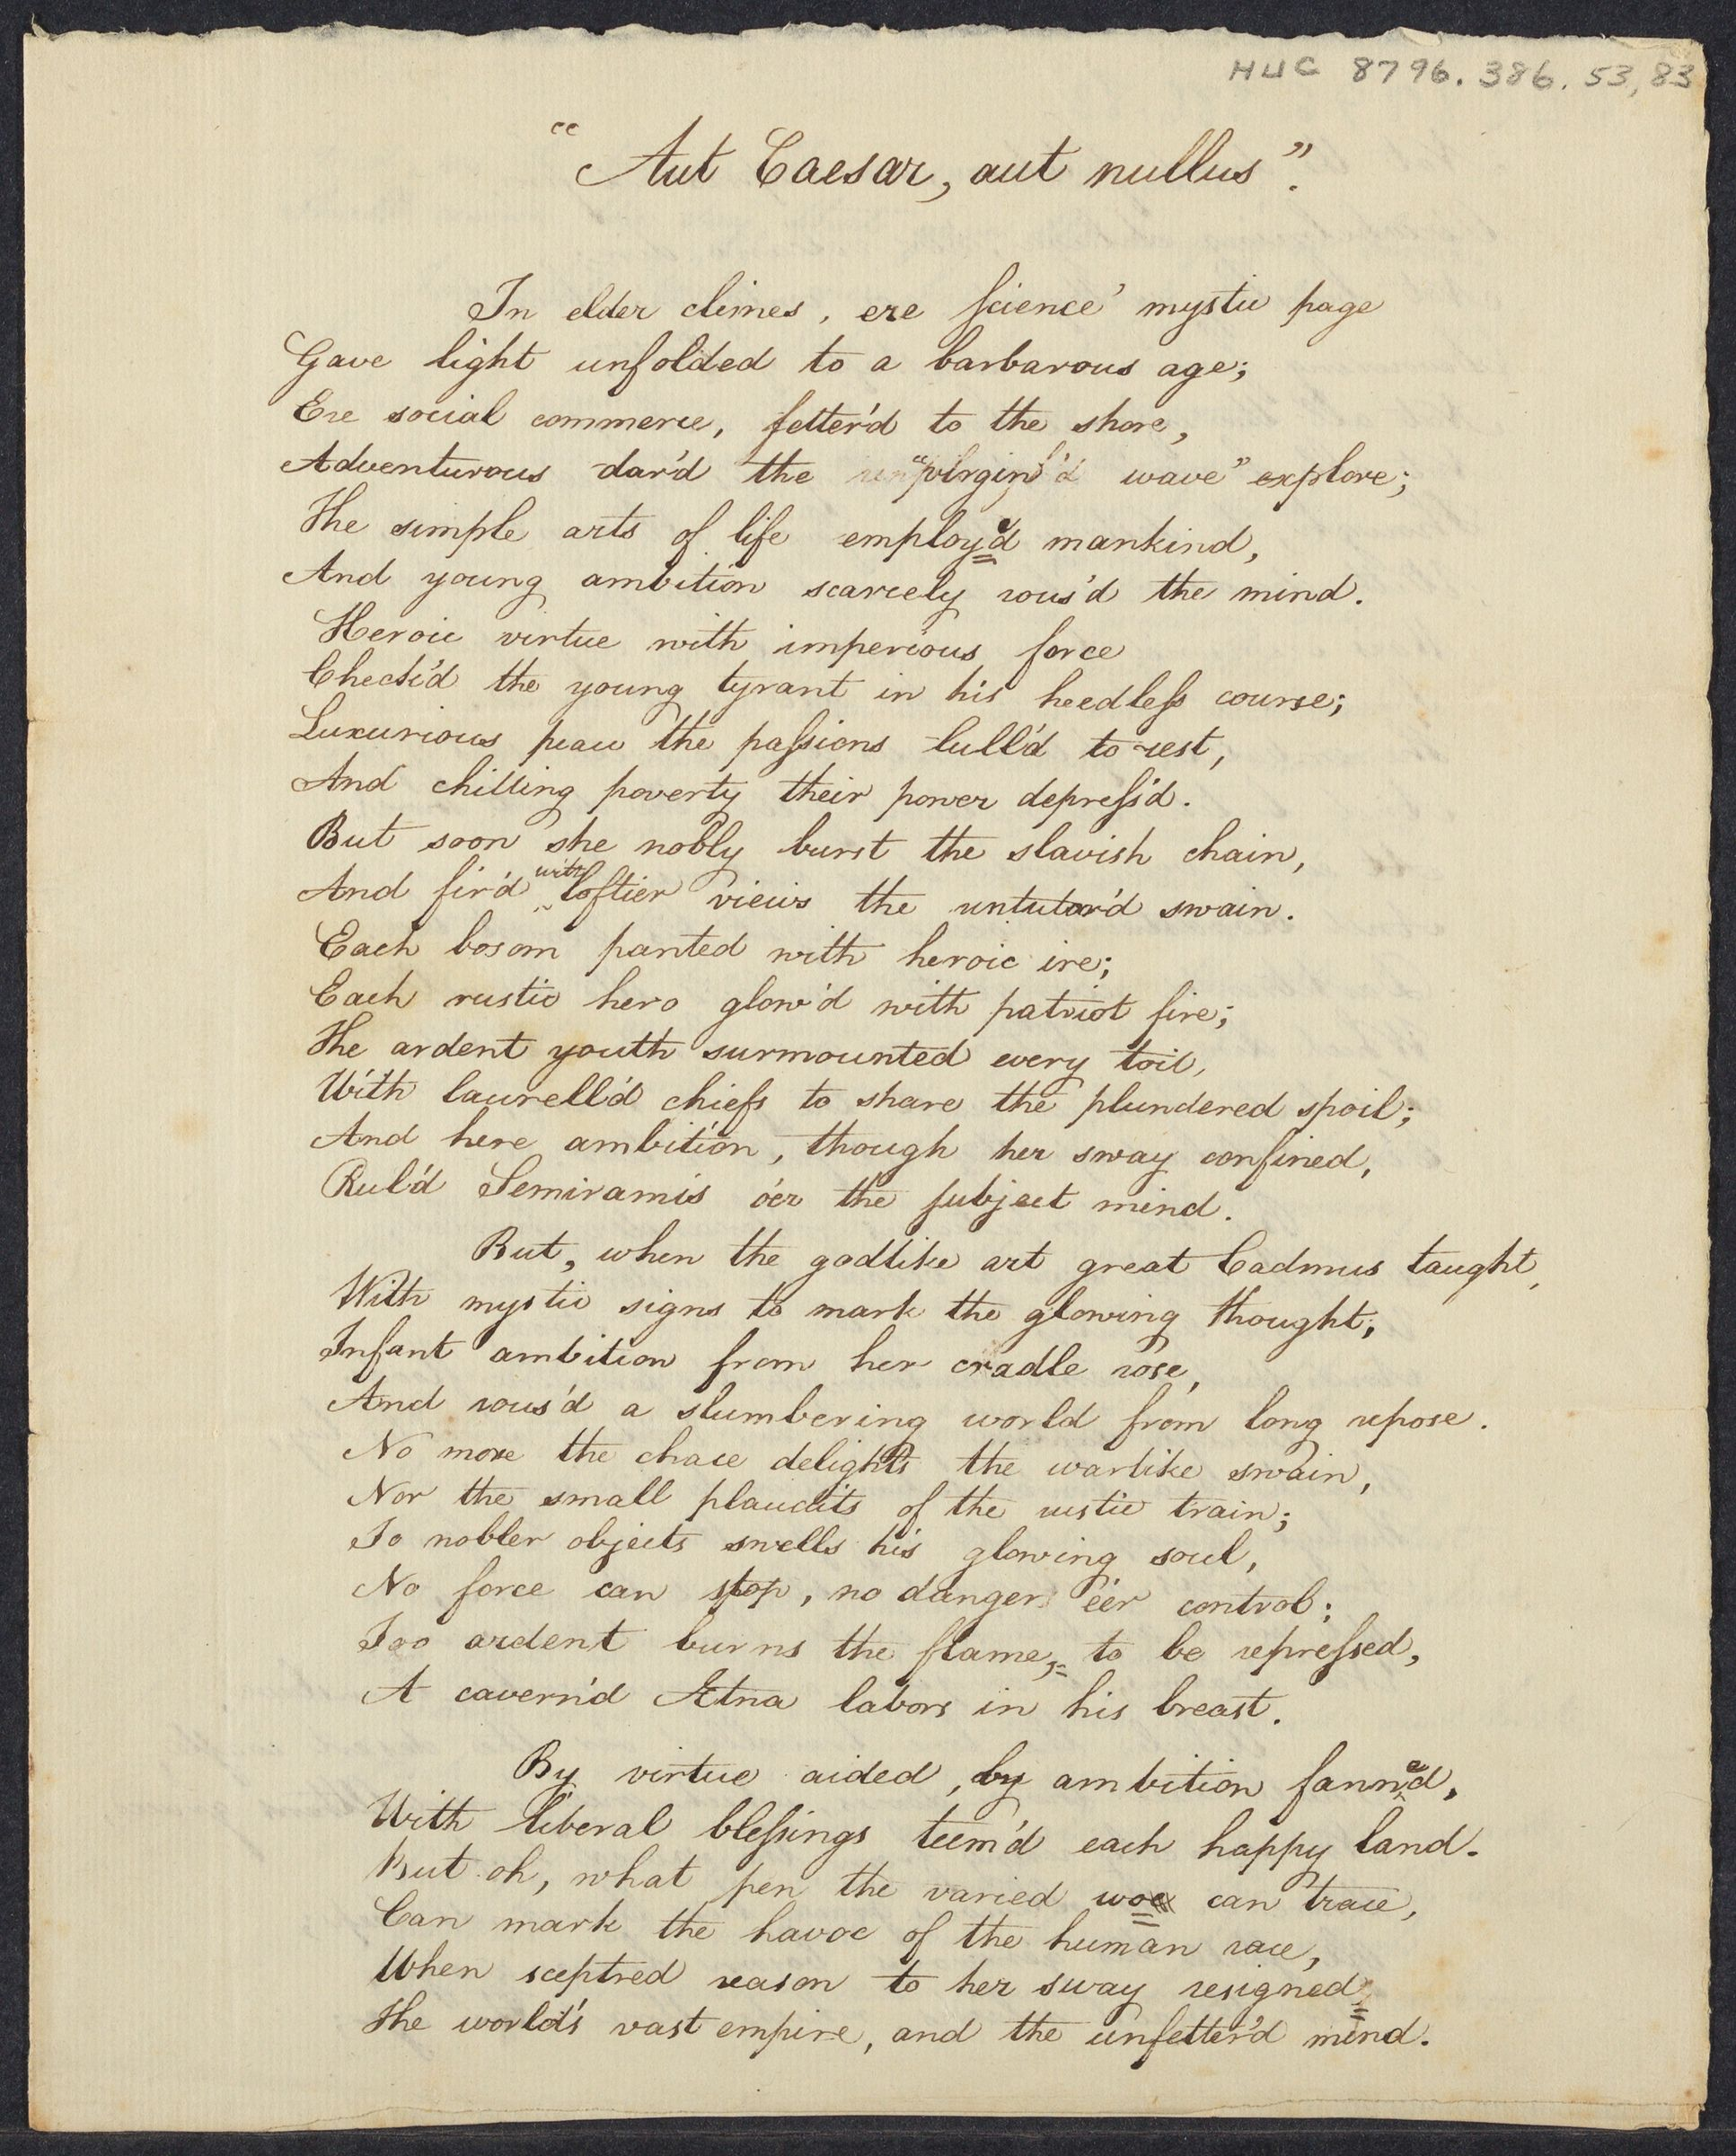 Student poem composed by Joseph Story, 1796